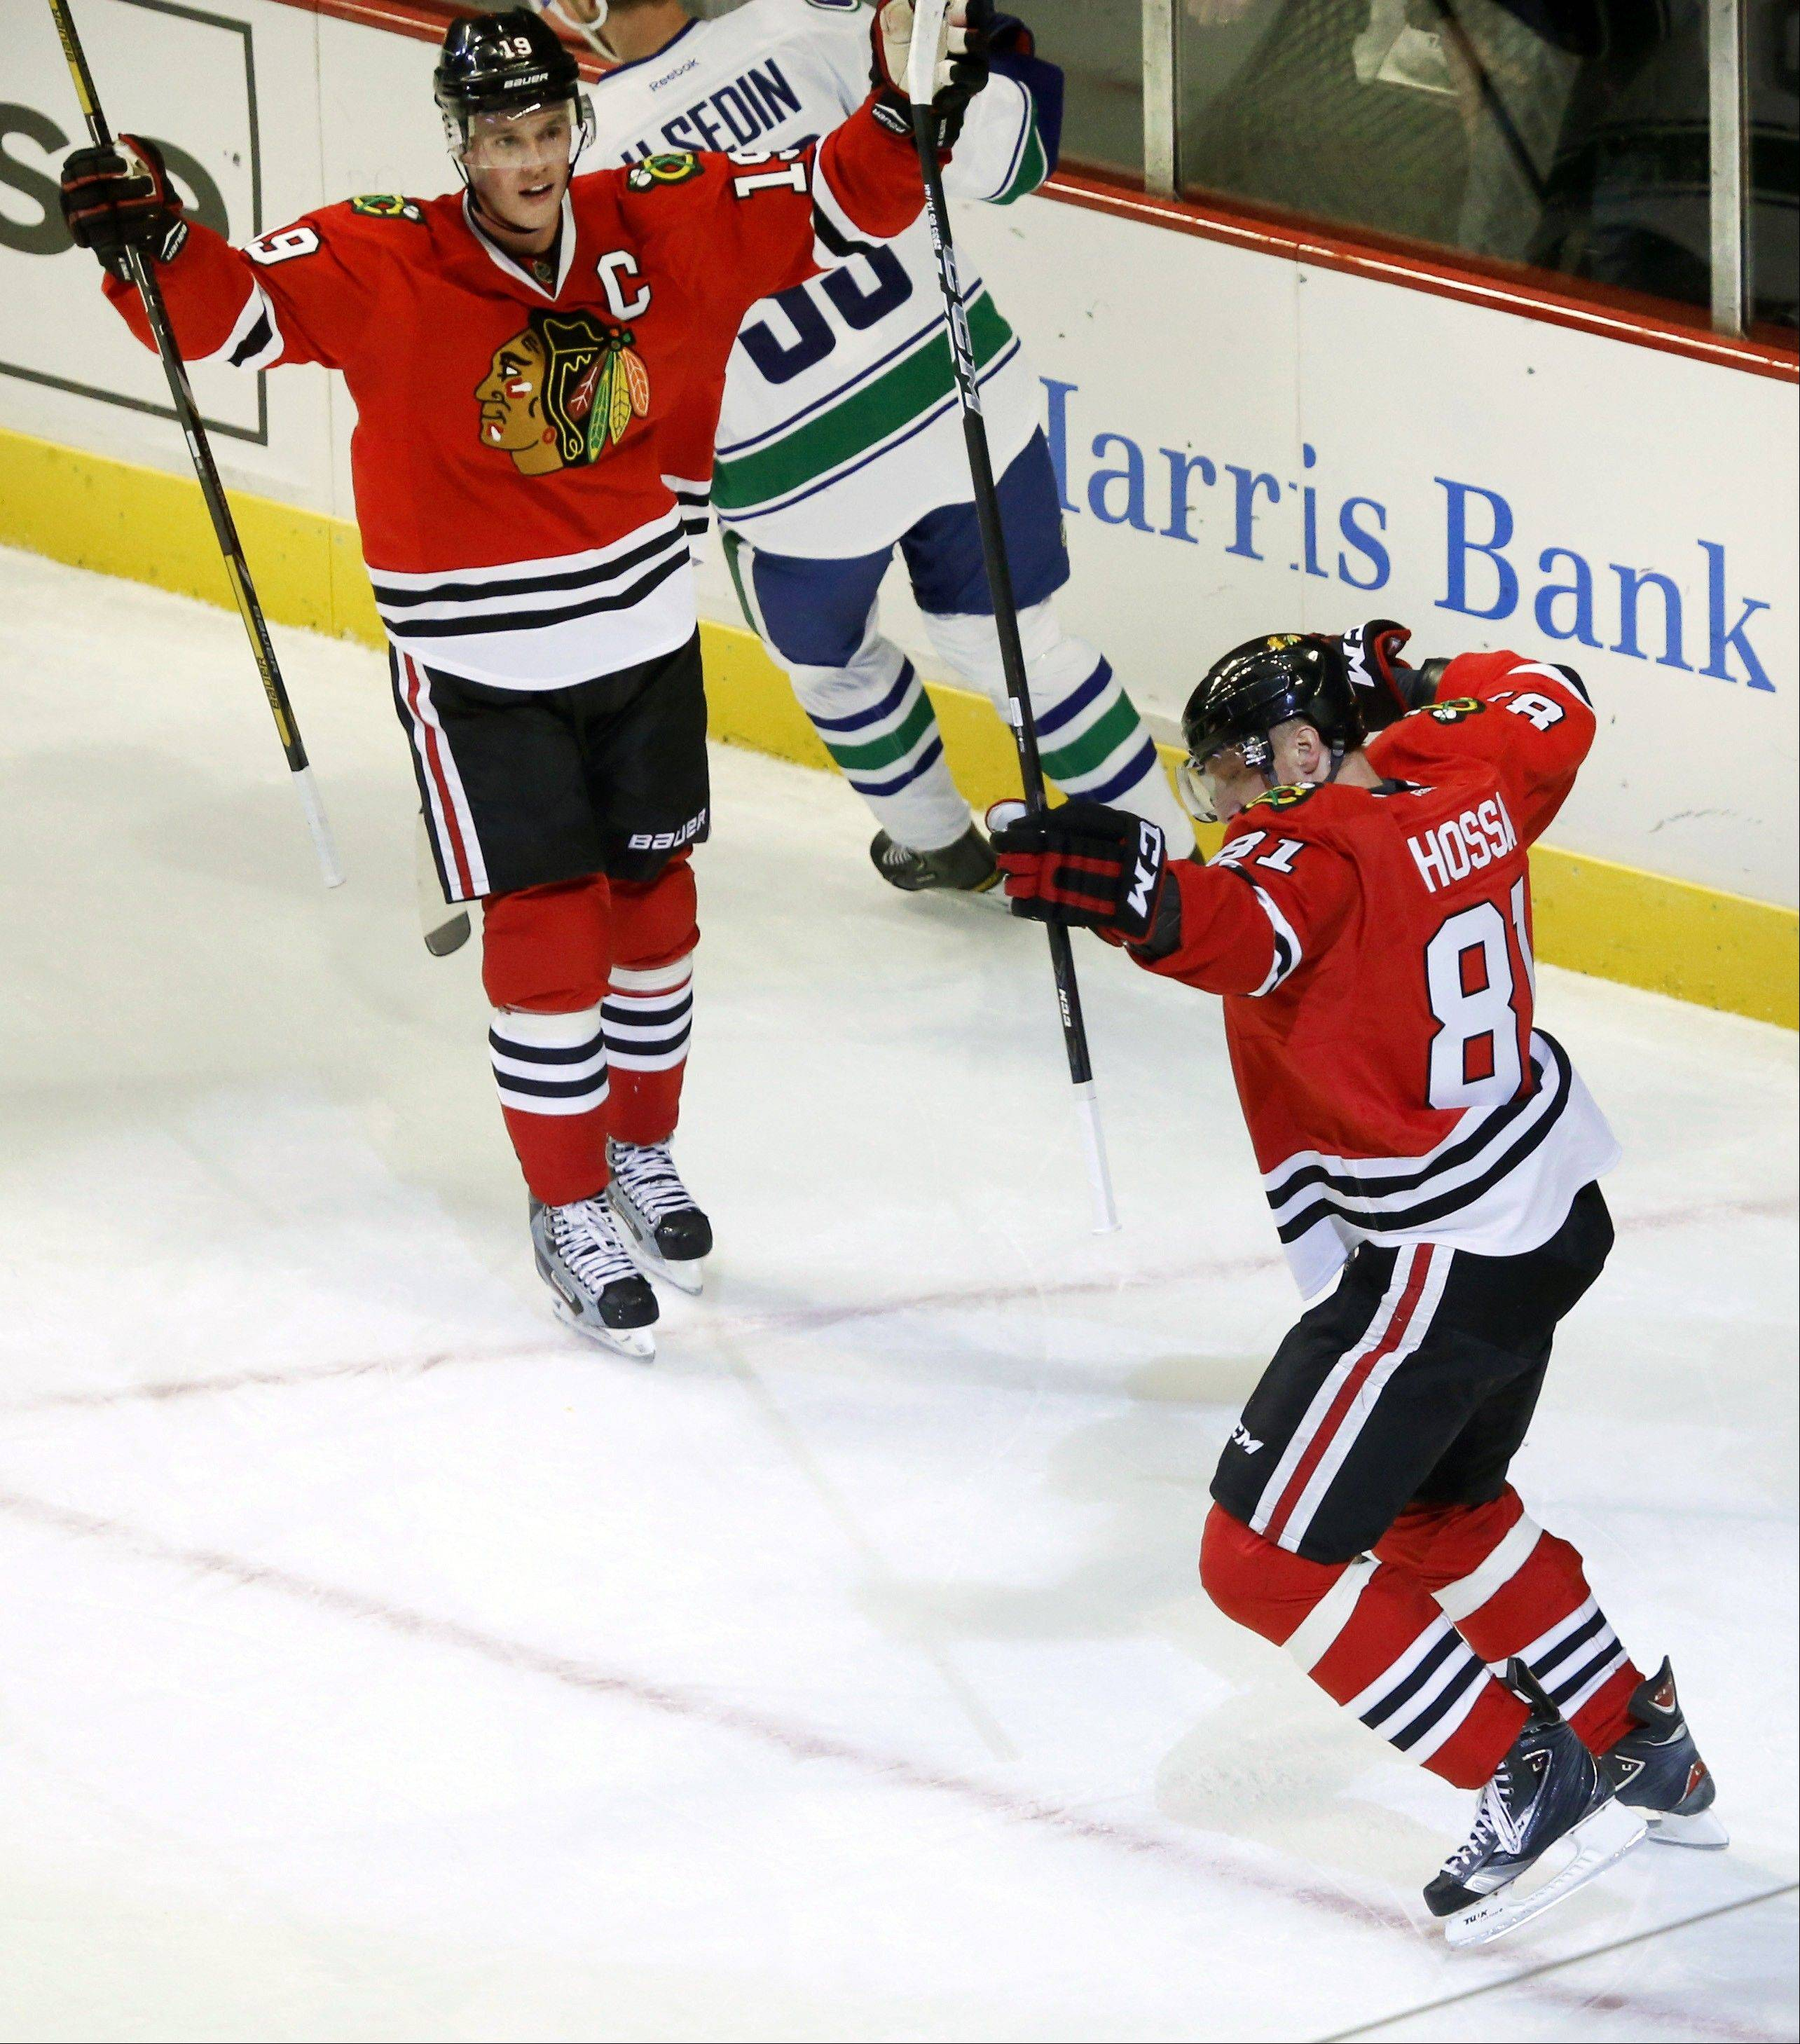 Chicago Blackhawks right wing Marian Hossa (81), from Slovakia, celebrates his second goal of the game with Jonathan Toews (19) during the second period of an NHL hockey game against the Vancouver Canucks Tuesday, Feb. 19, 2013 in Chicago.